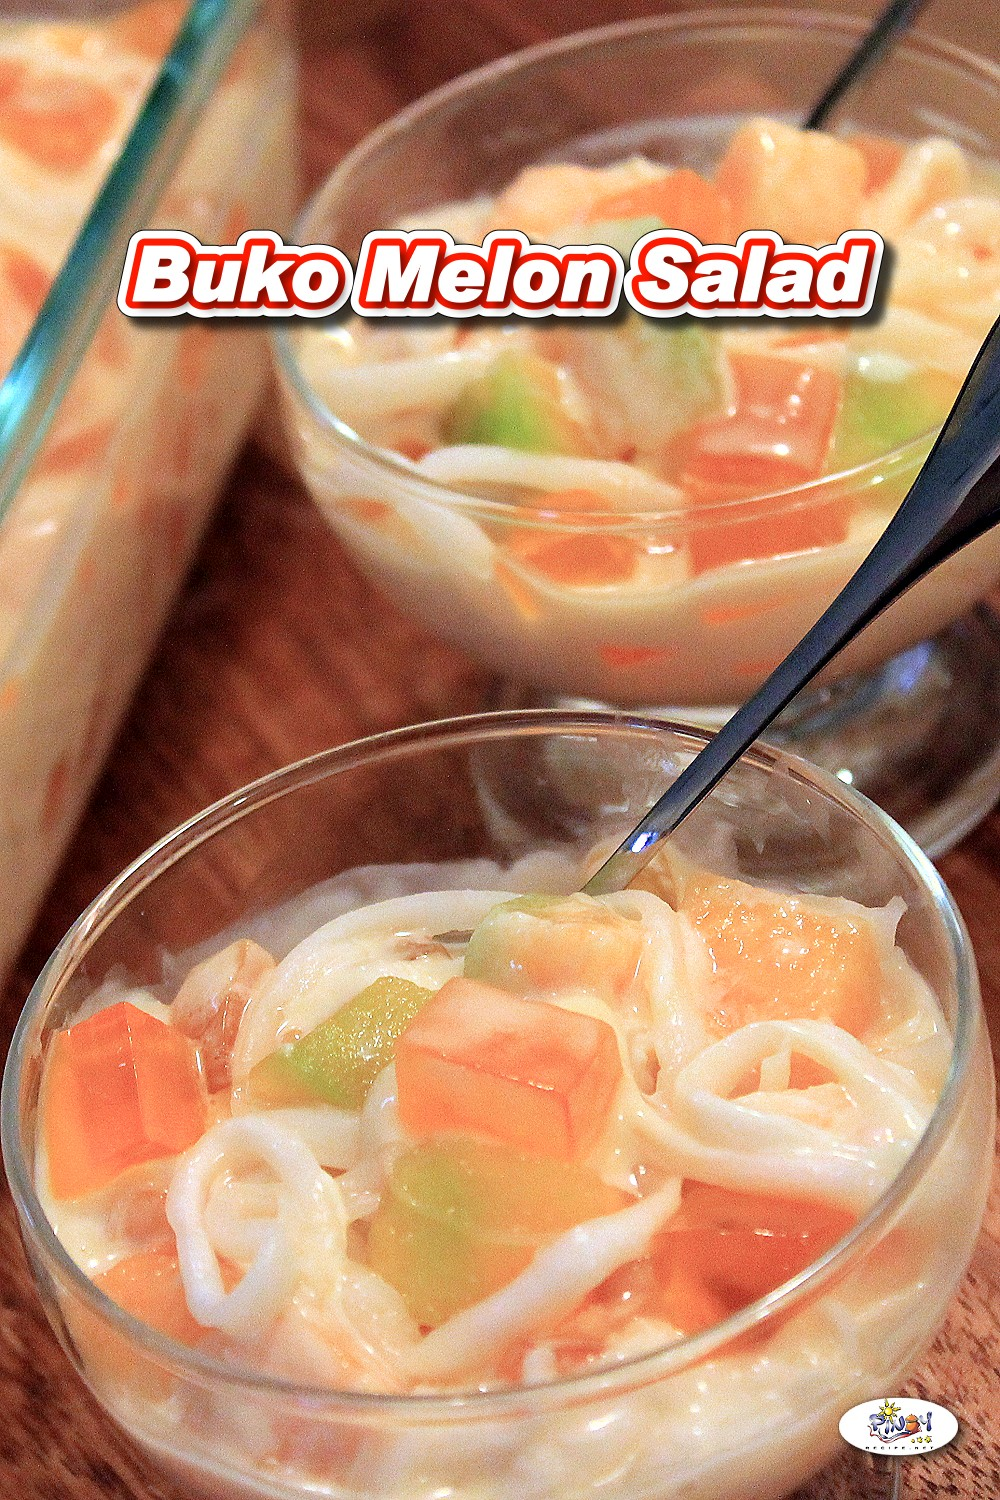 Buko Melon Salad